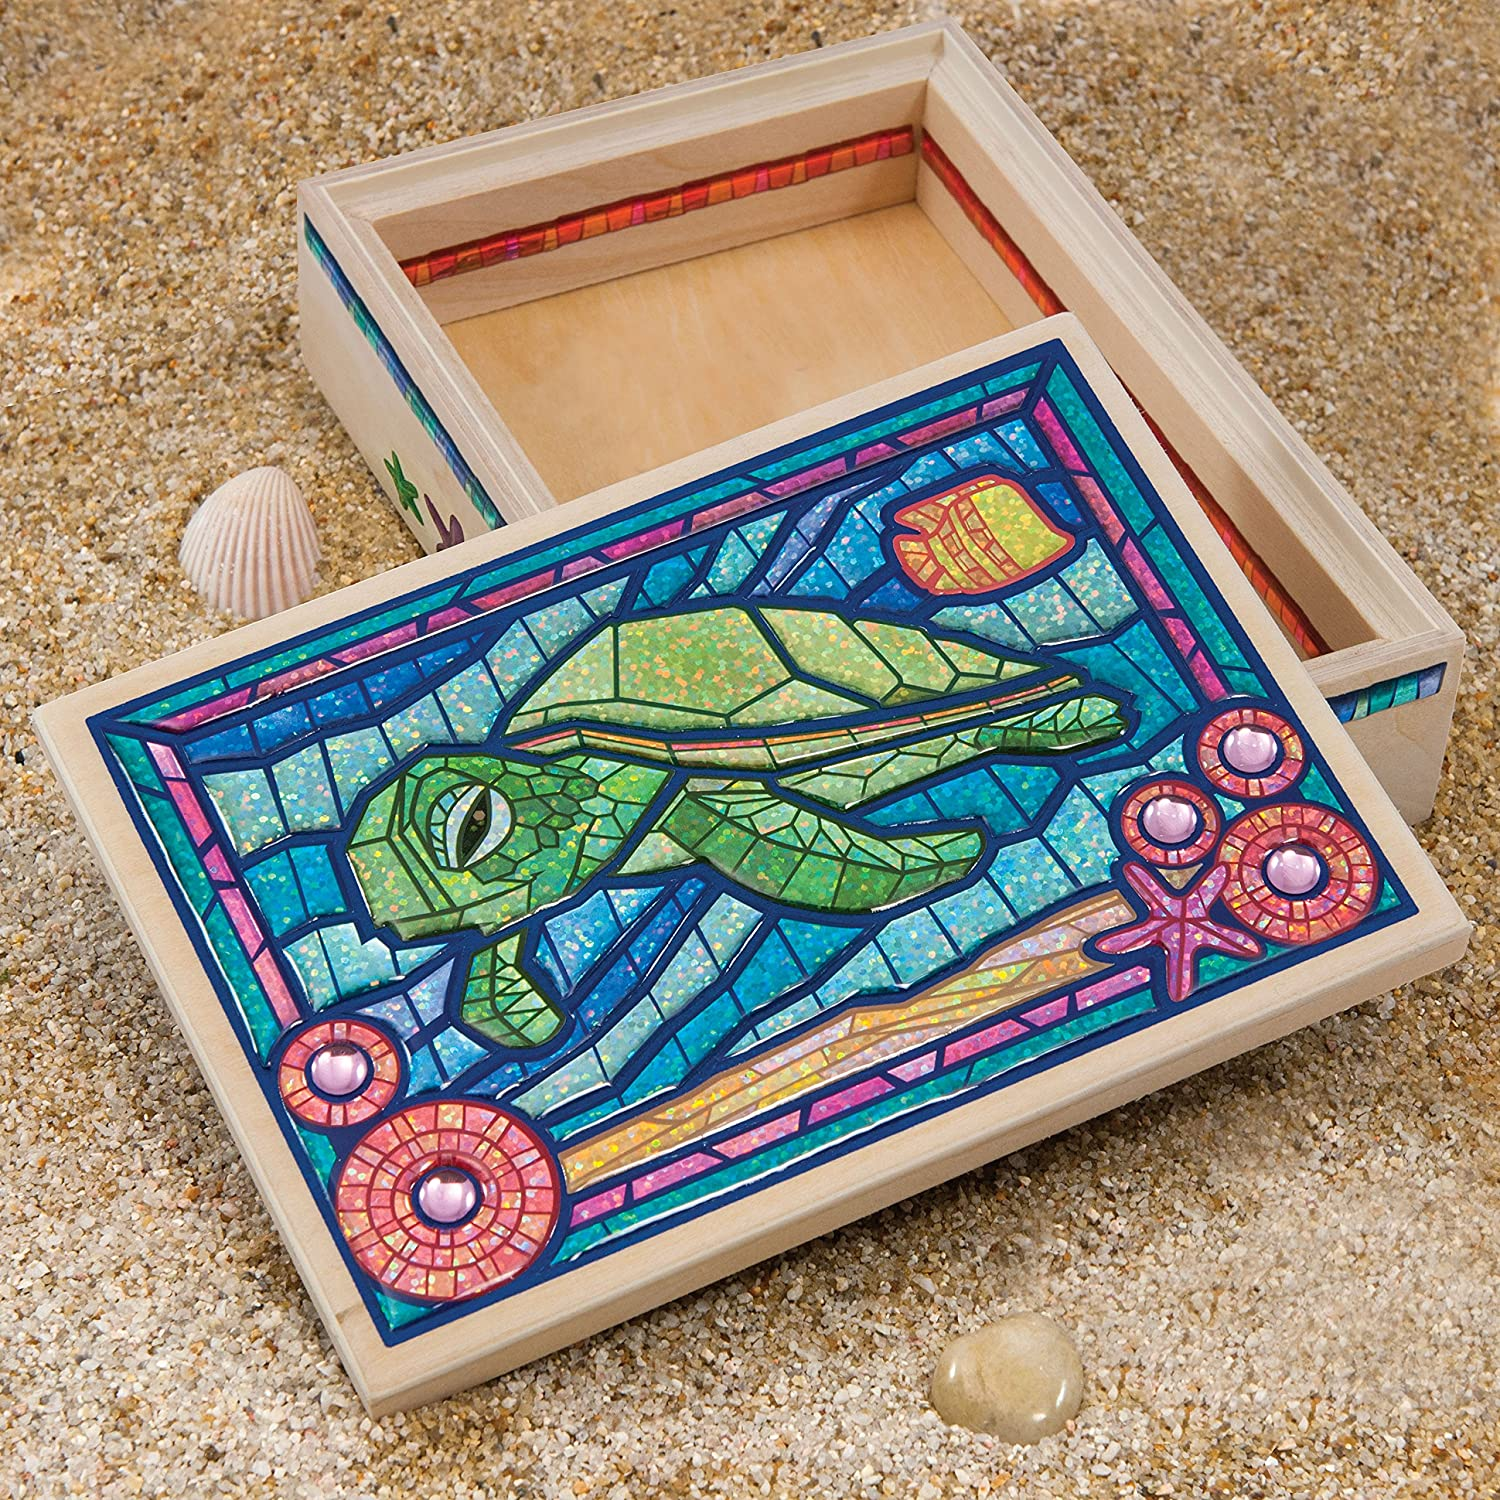 American Girl Crafts Turtle Mosaic Box Kit